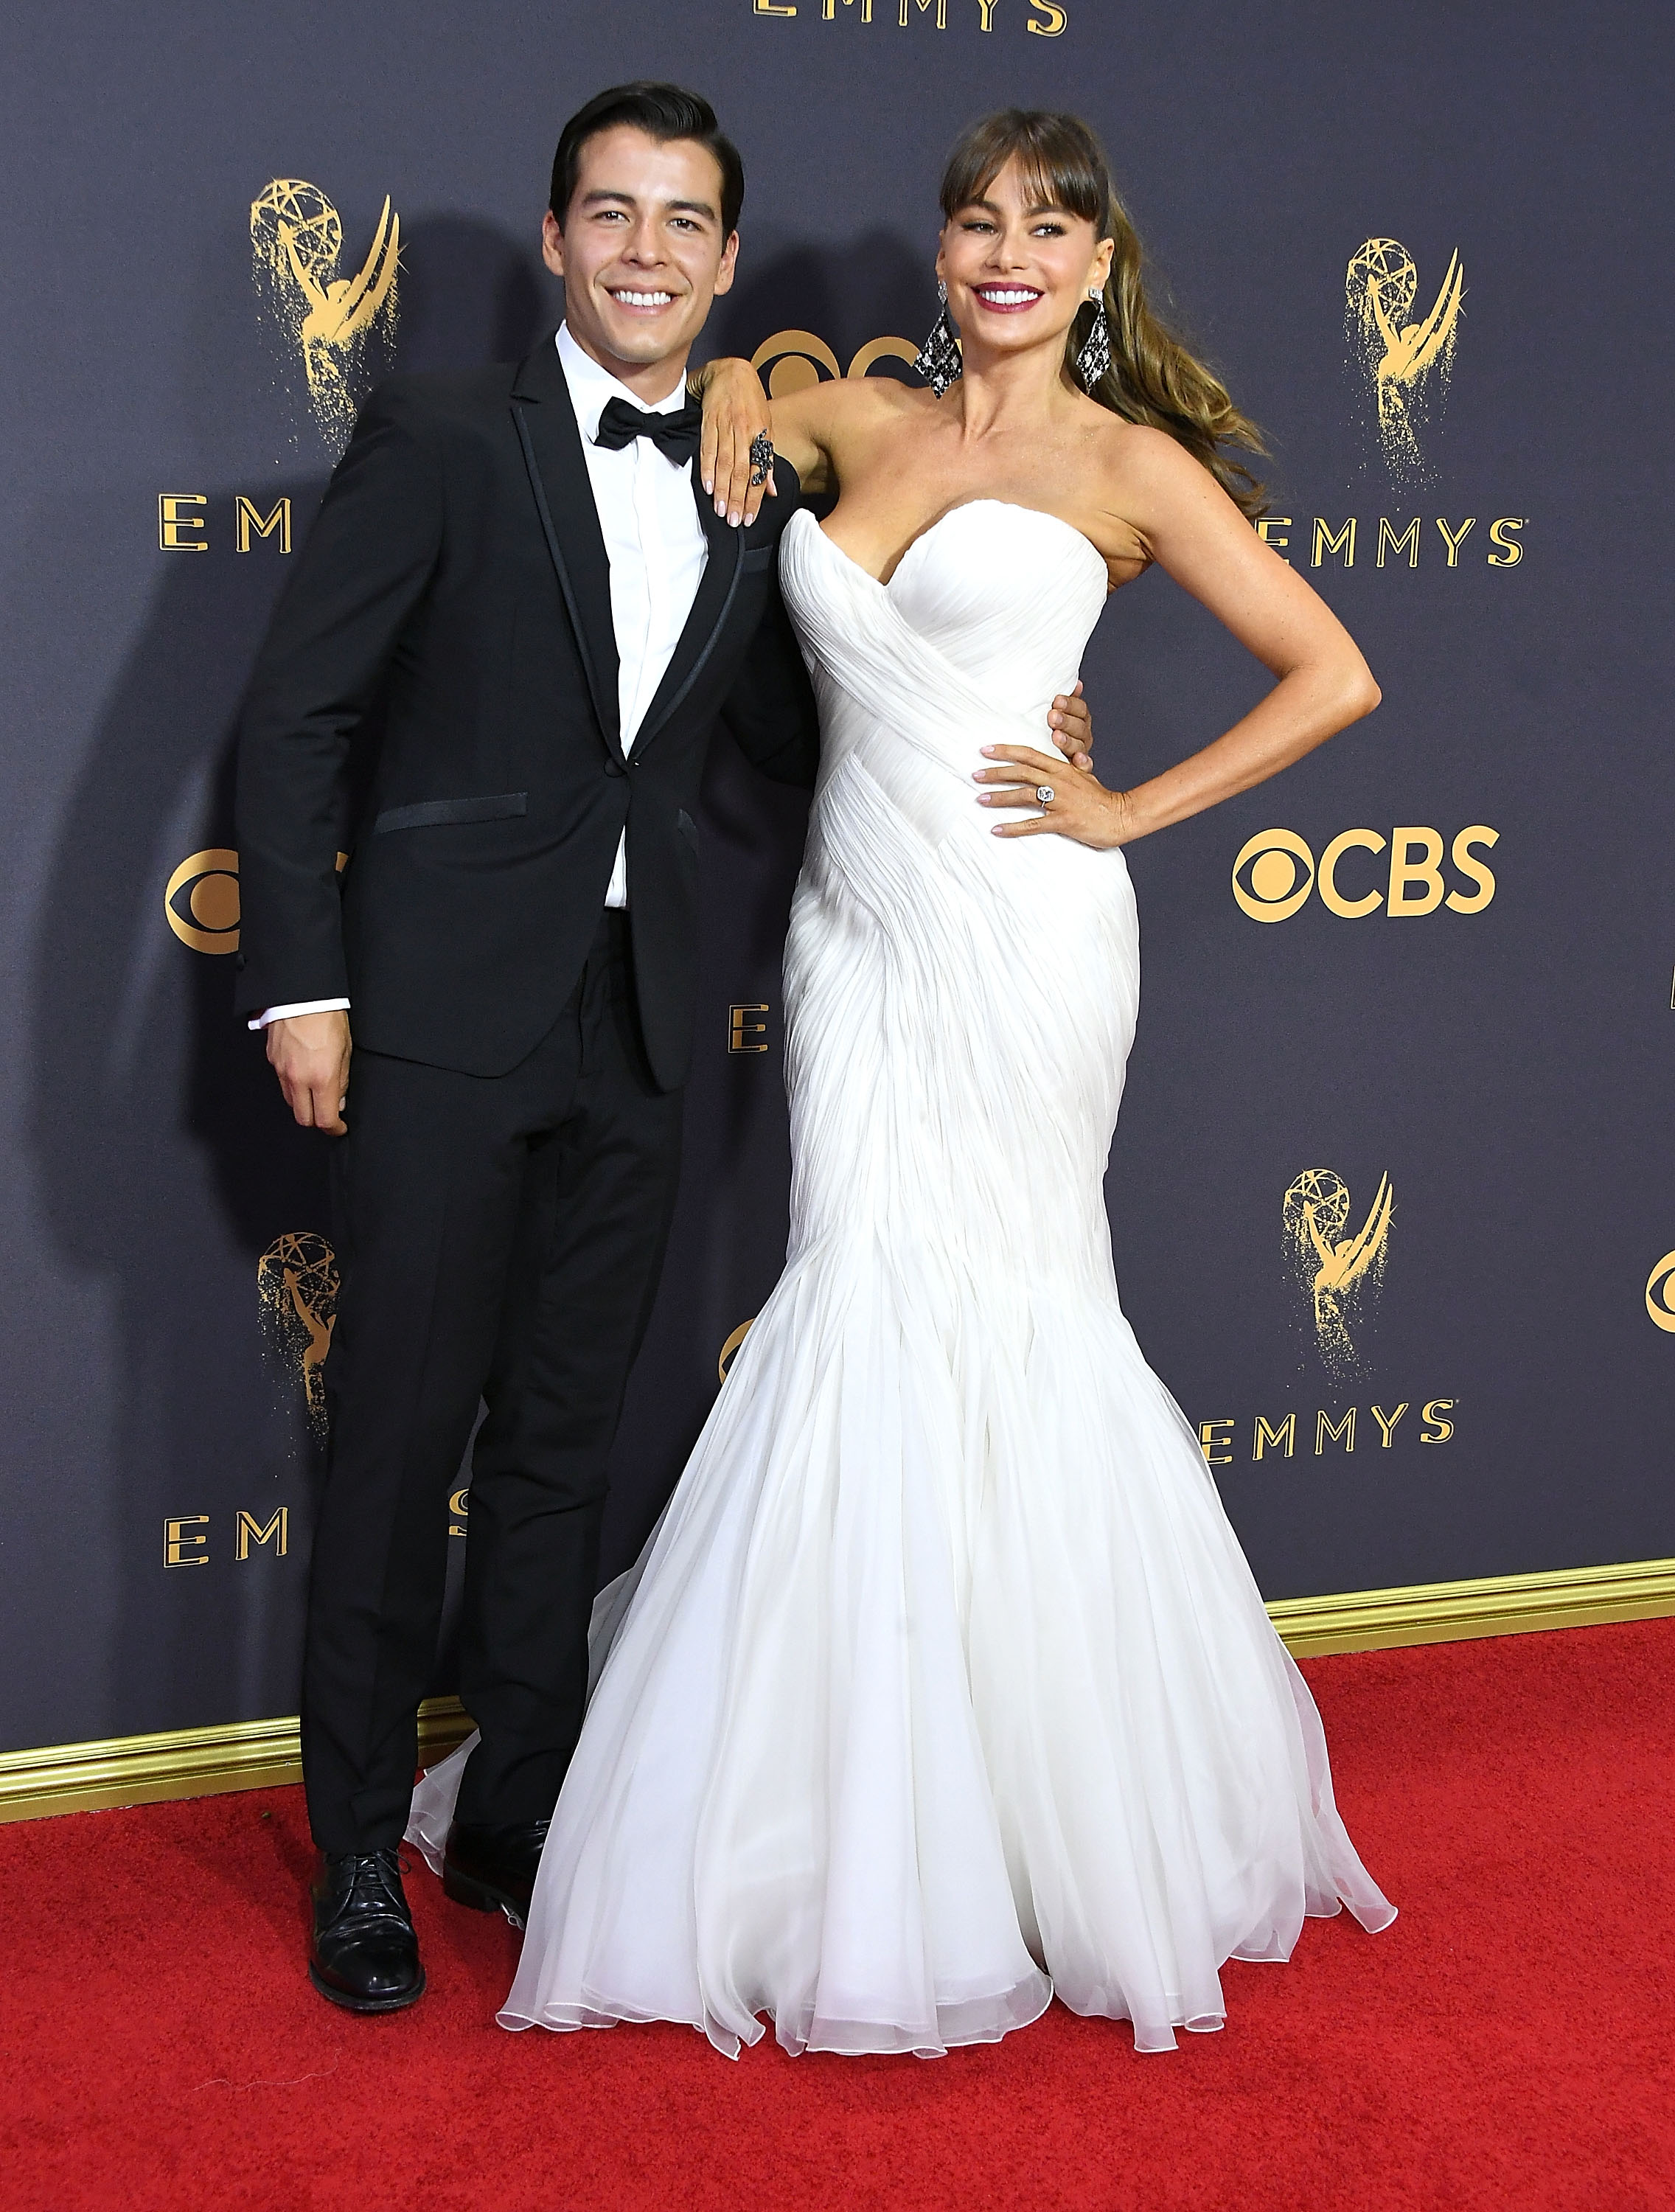 Sofia Vergara Wedding.Sofia Vergara Wears A Wedding Dress To Emmy Awards 2017